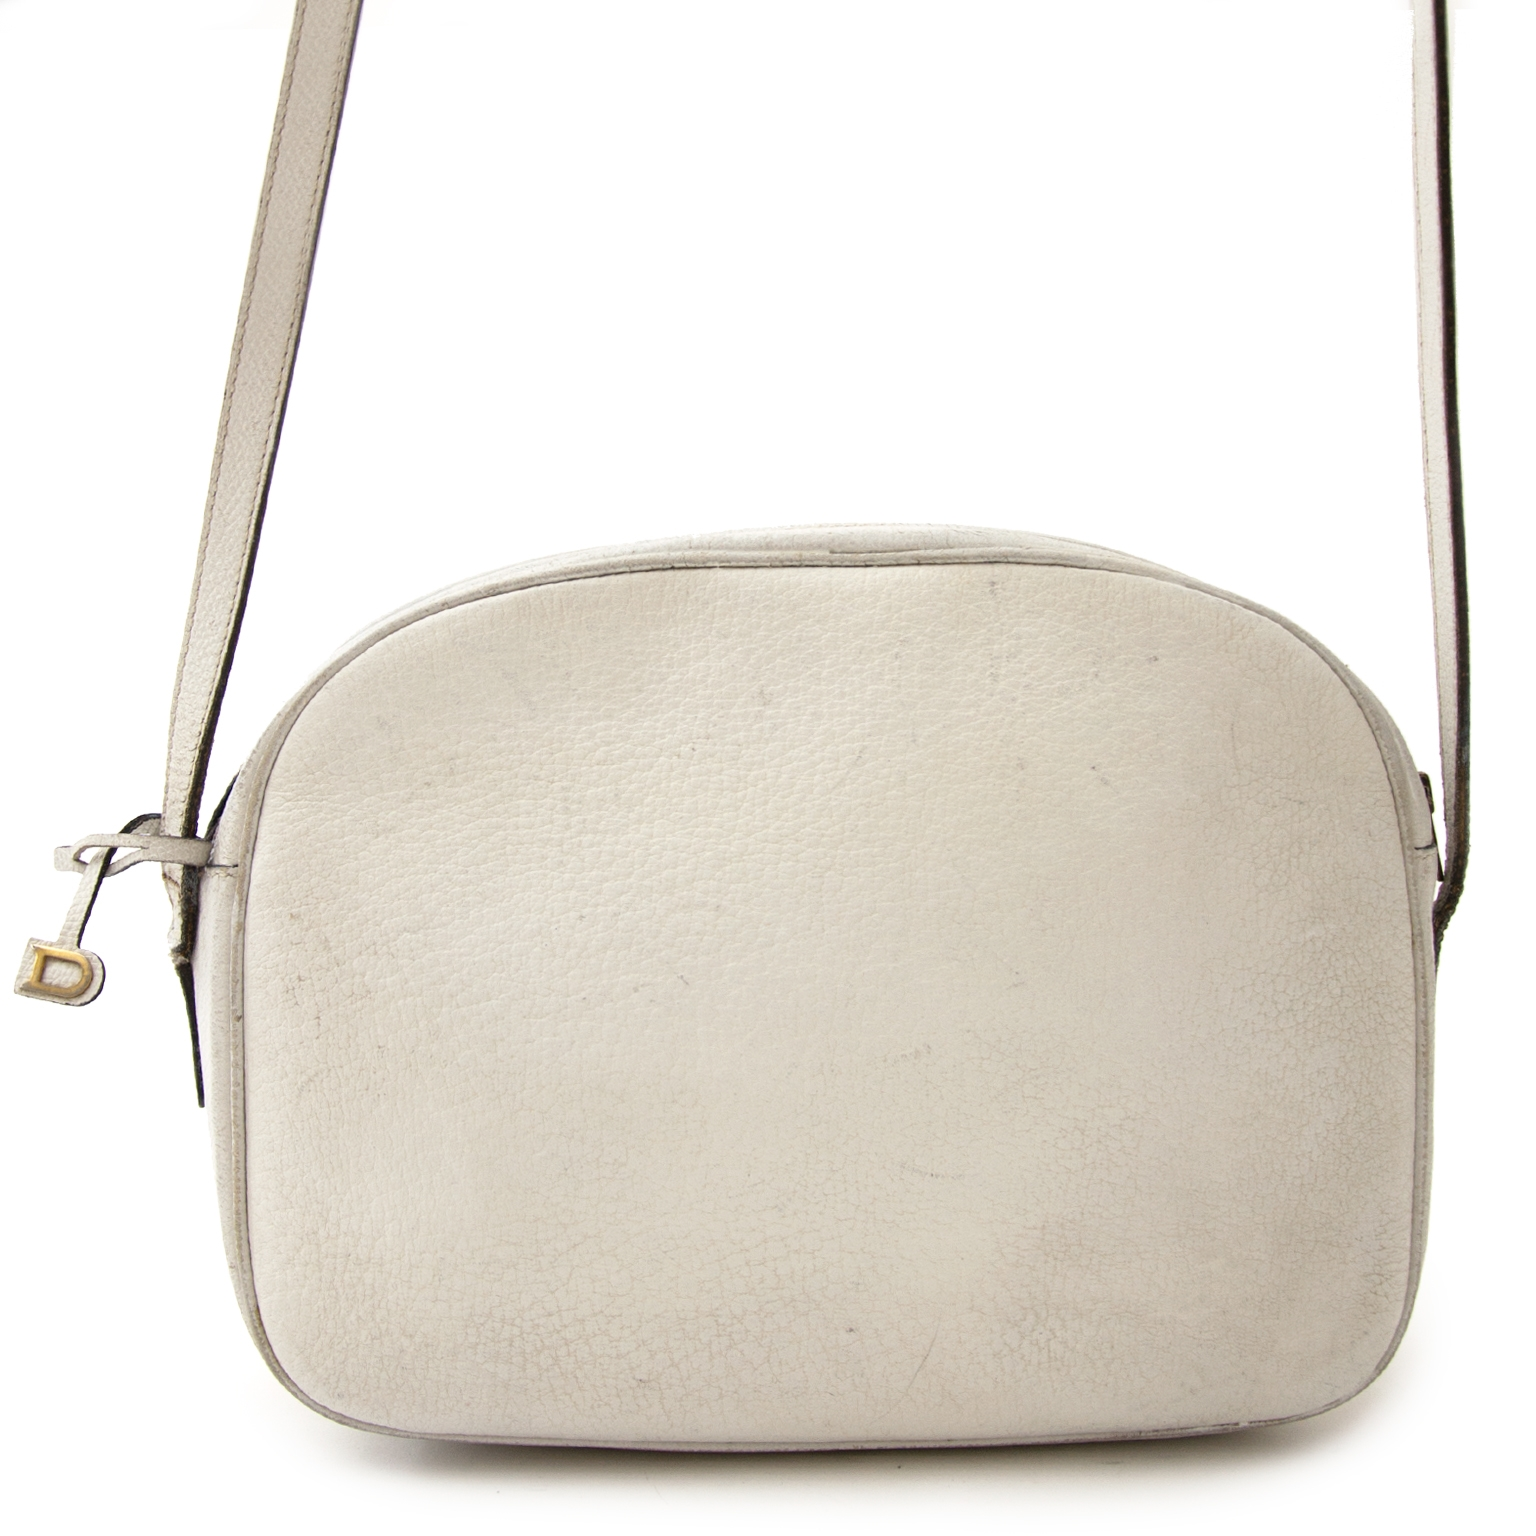 Delvaux Vintage White Crossbody Bag